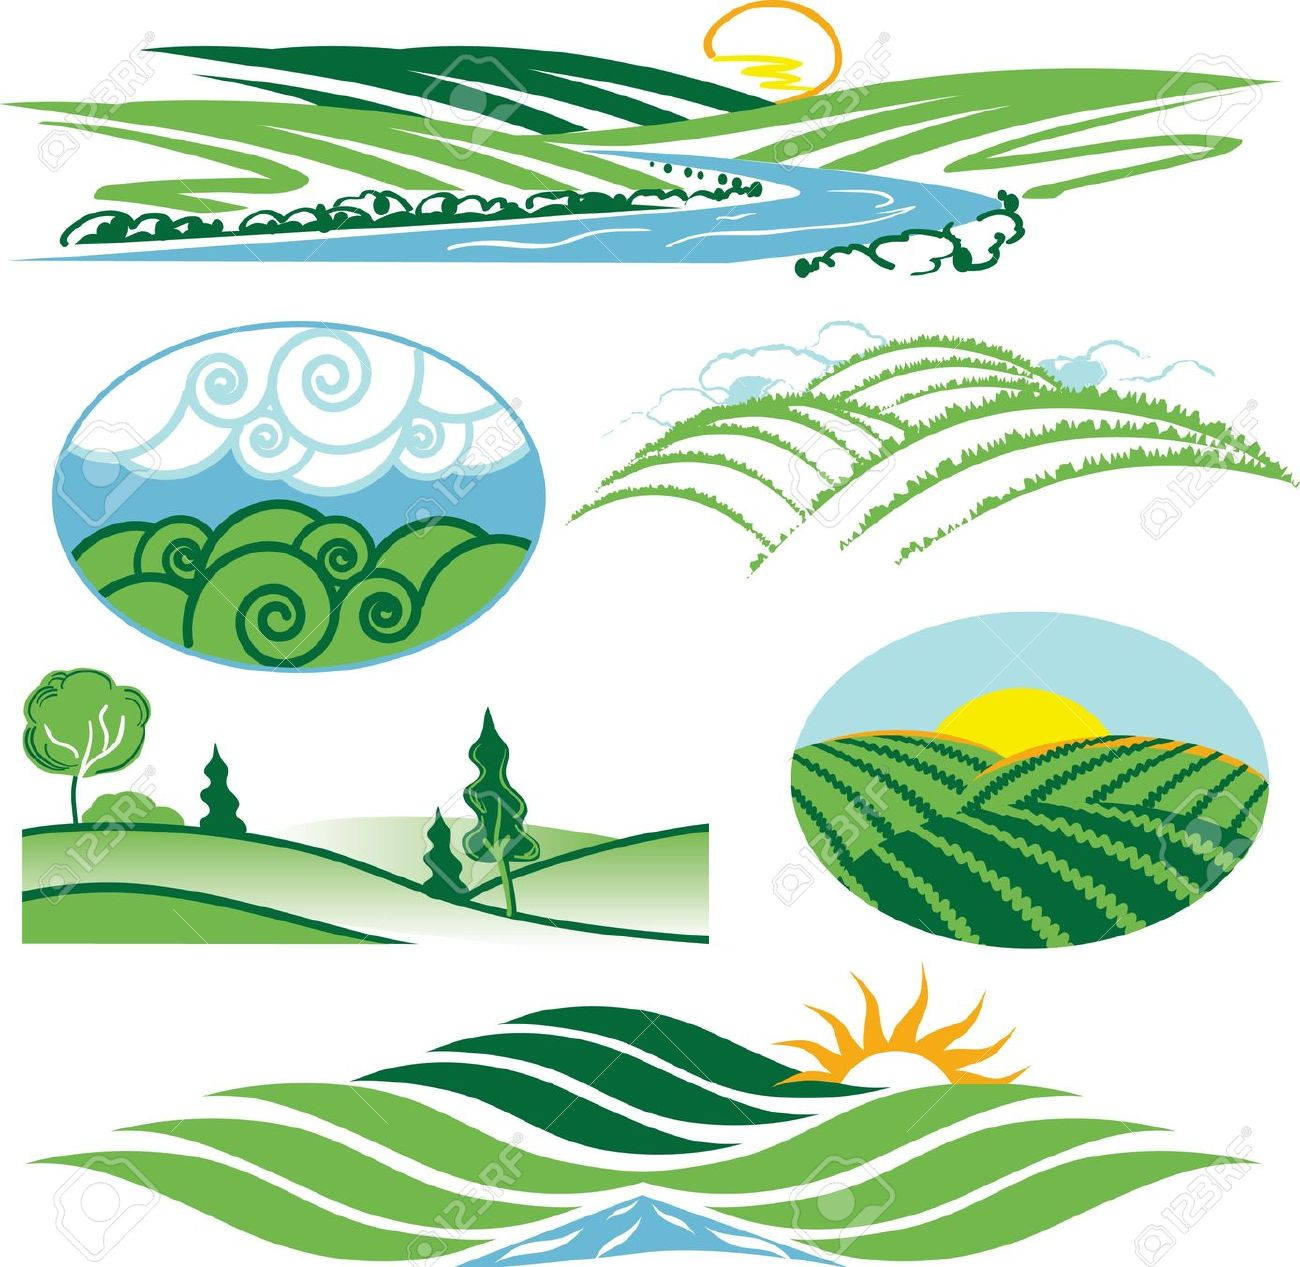 Rolling Green Hills Royalty Free Cliparts, Vectors, And Stock.